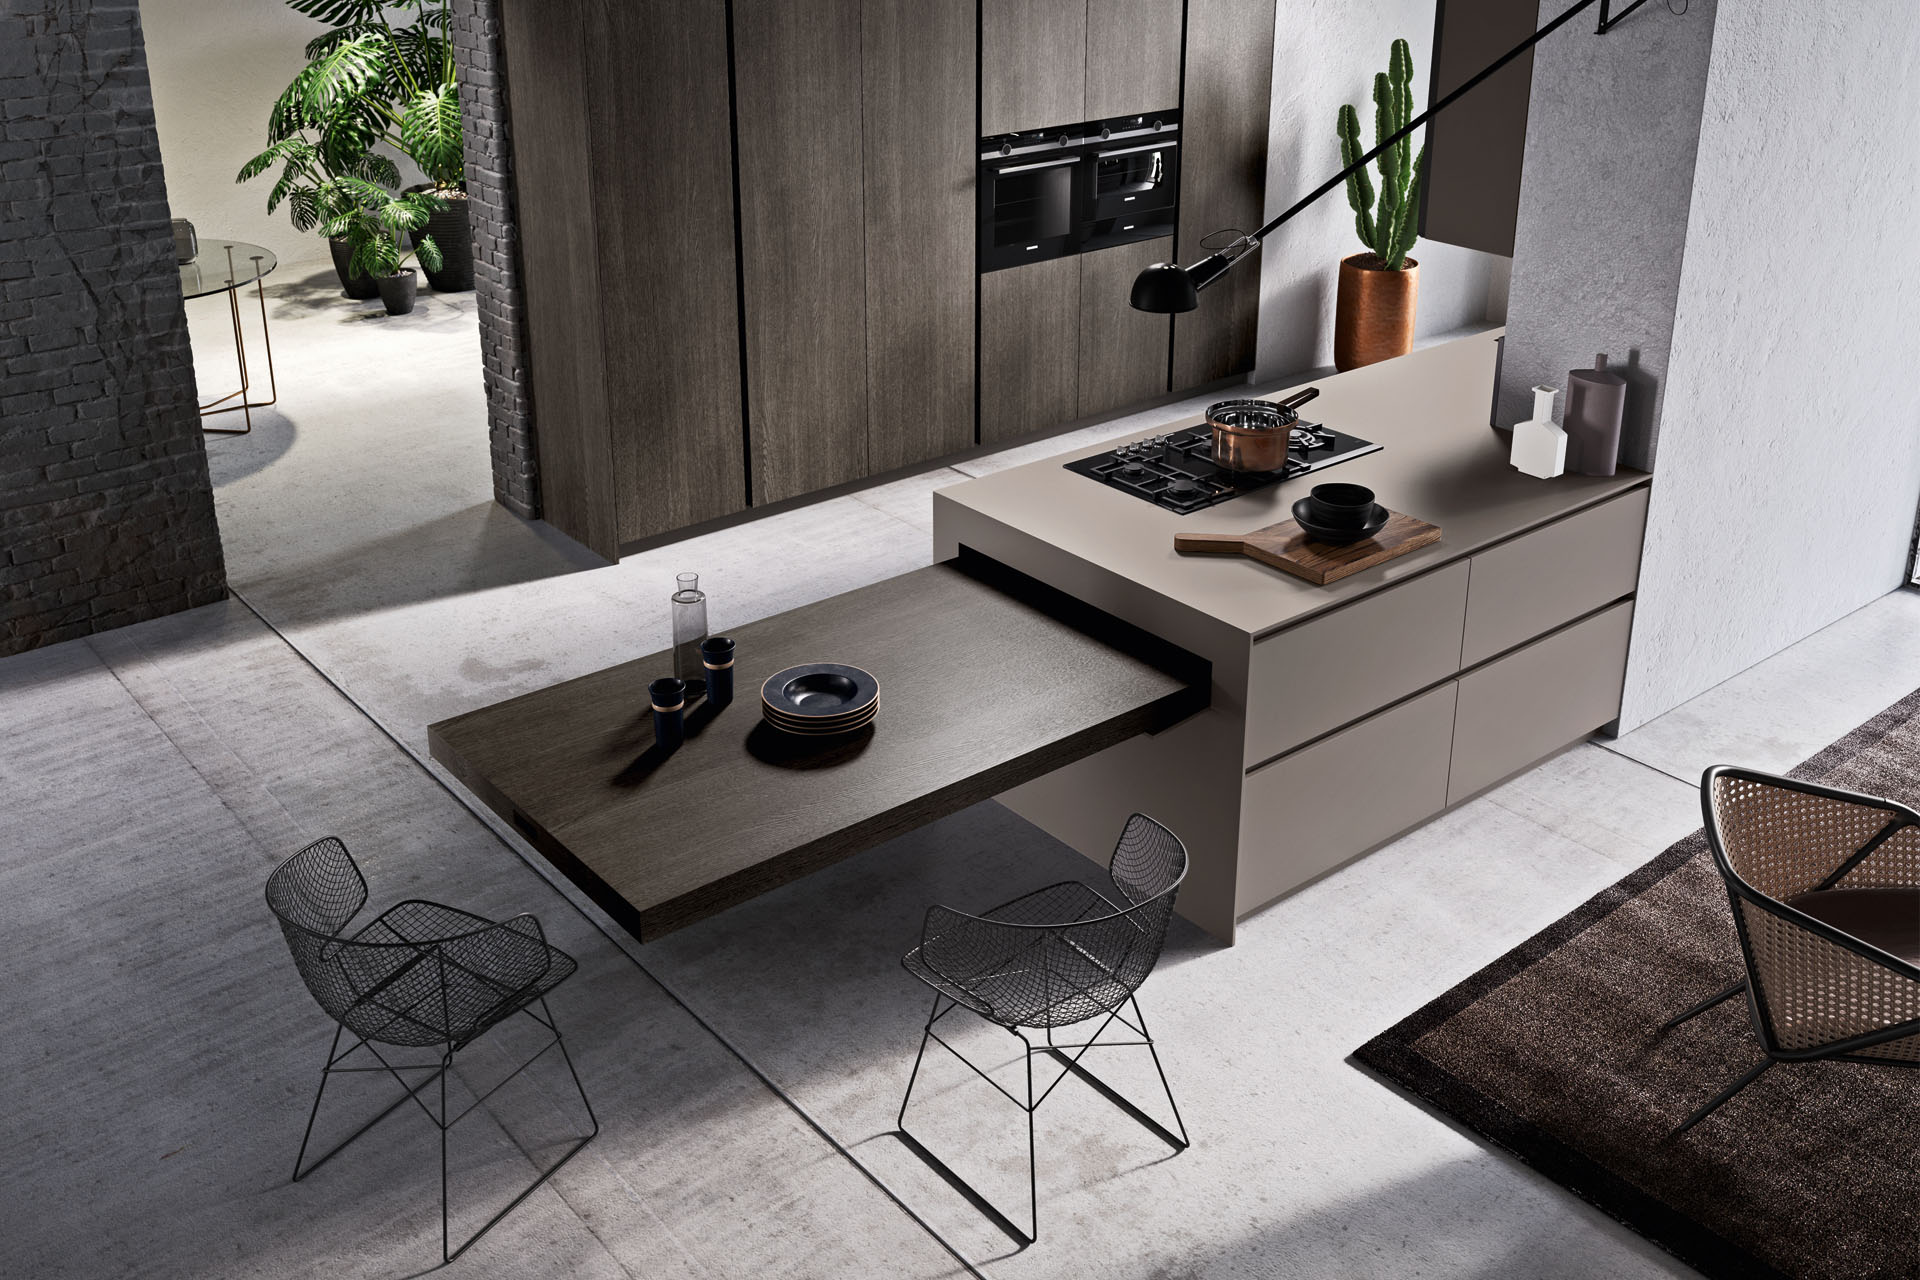 - Then, expect all of that delivered in sleek, curvilinear Italian styling. Pedini style is iconic, an absolute embodiment of clean, modern design. Everything they create is steeped in luxury. They use only the best materials that stand the test of time and connect deeply with each of your senses. The smell and feel of natural wood, the dynamic tones achieved by durable lacquer finishes, the flawless sheen of high-quality tempered glass. Pedini is for perfectionists who care about the details and can't settle for less than the most bold, trendsetting cabinetry on the planet.